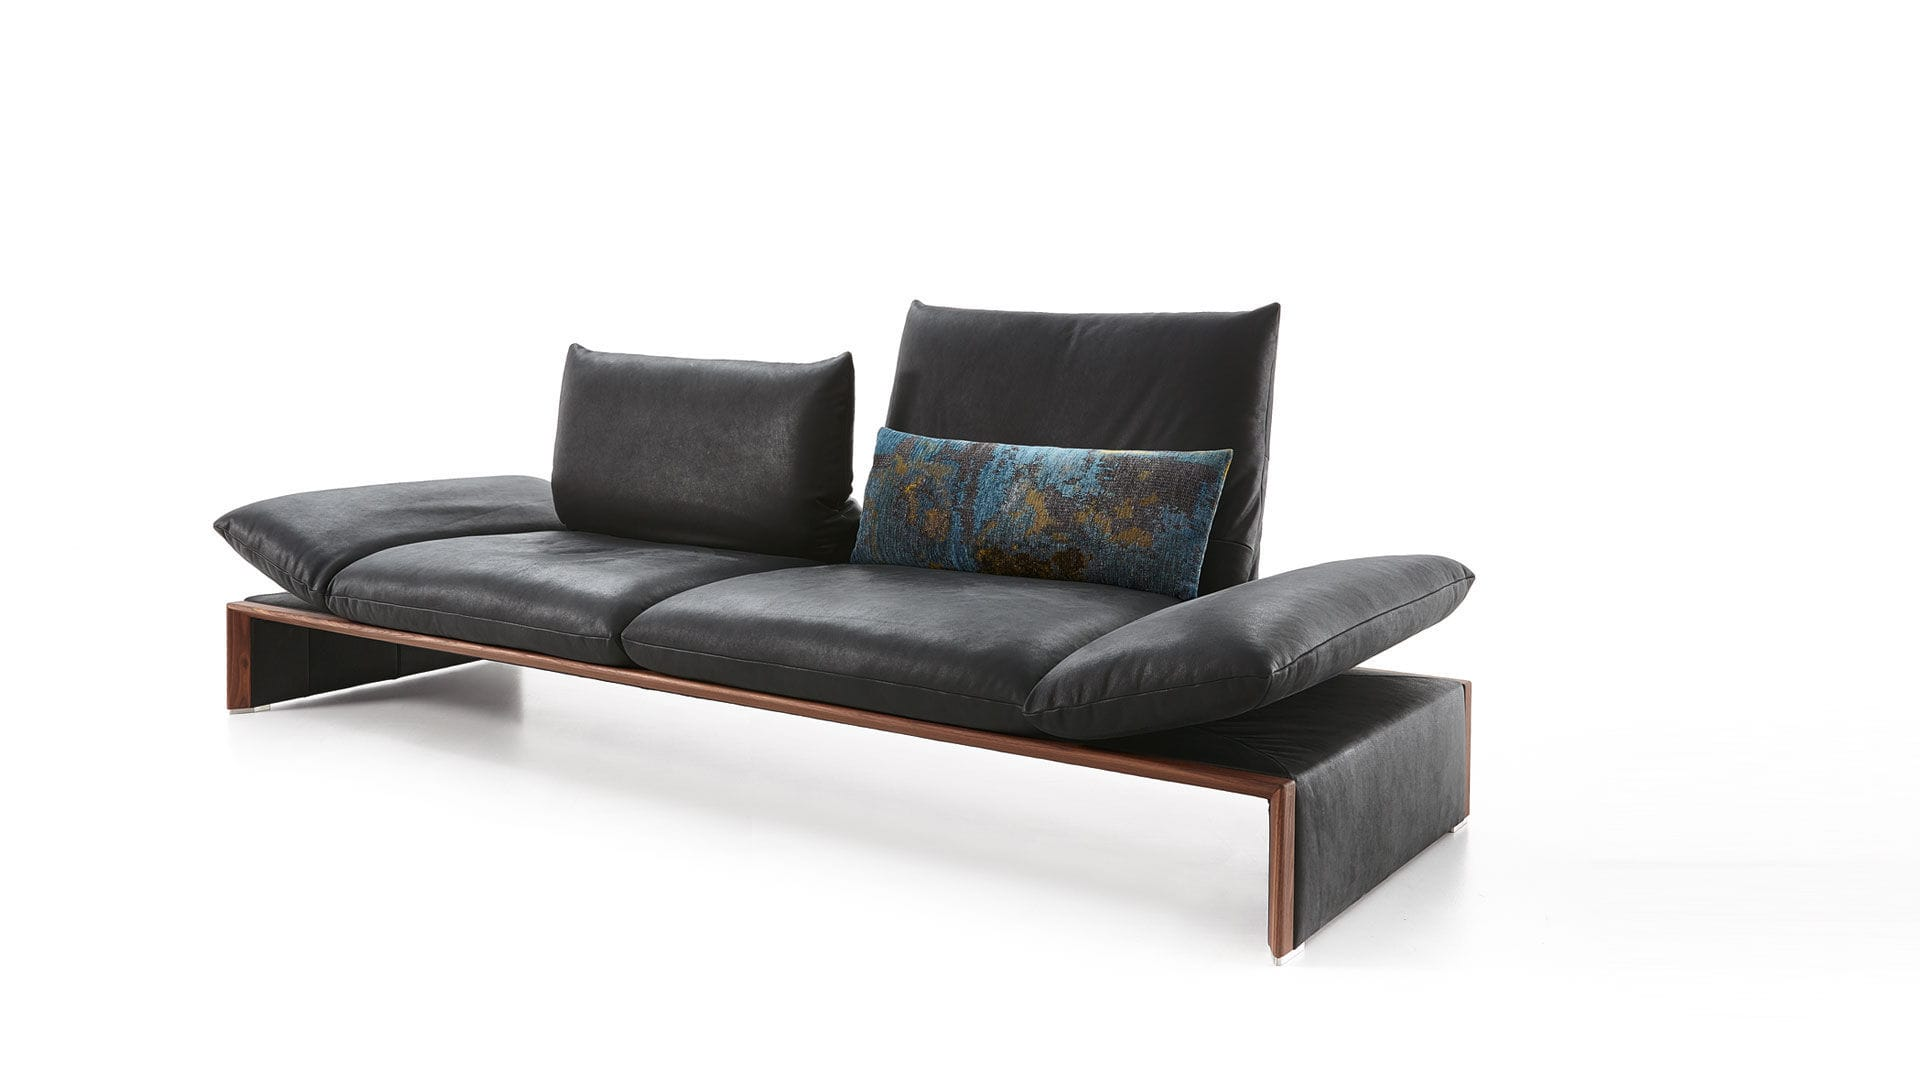 set pinterest architecture futon decor mattress and on japanese bed before frame interior frames futons westfield fabulous at minimalist wood craftsman cool enthralling houston